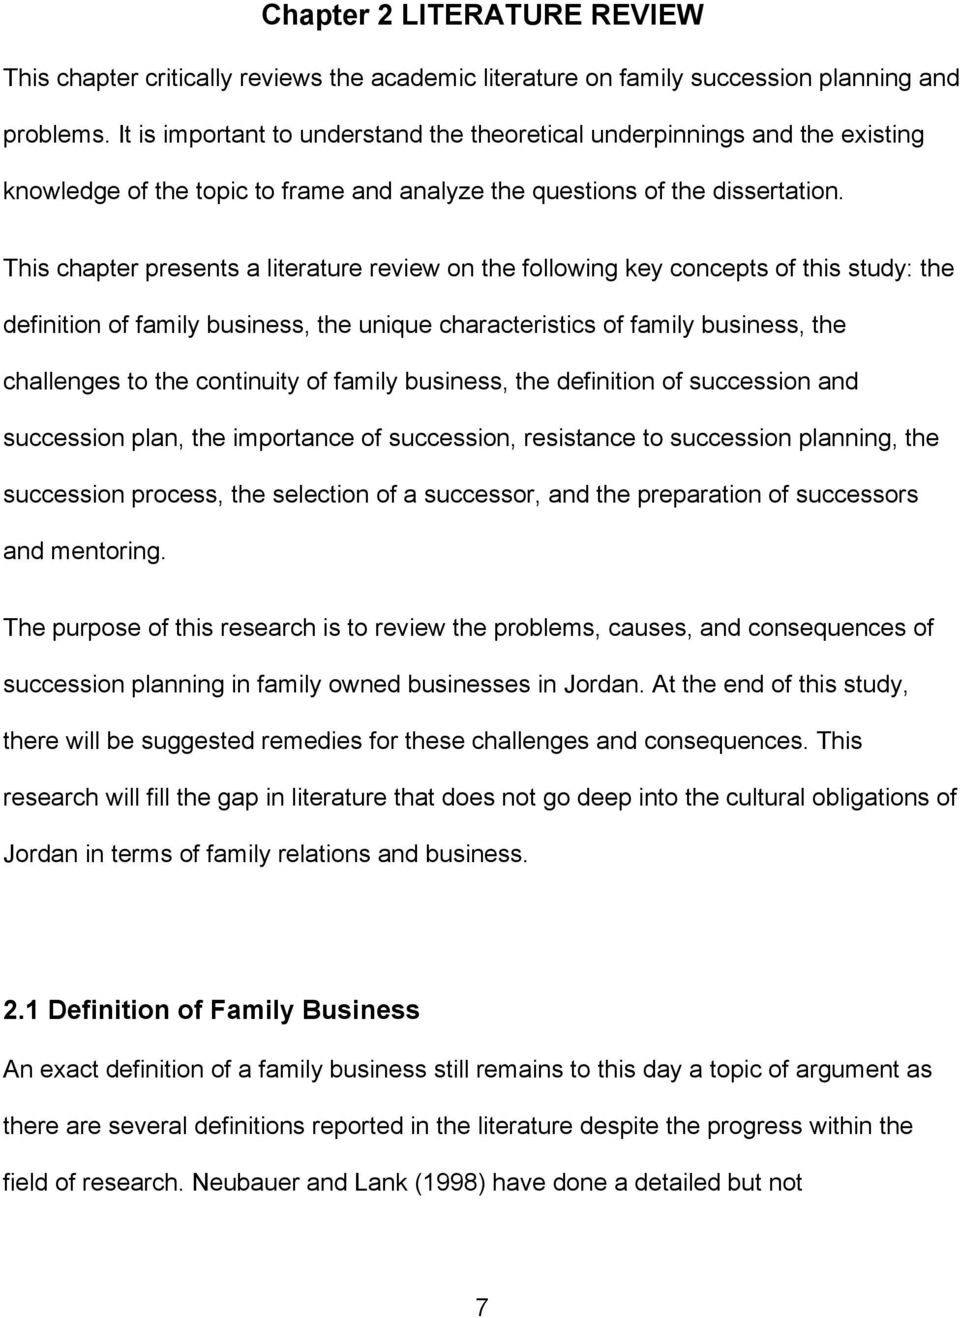 This chapter presents a literature review on the following key concepts of this study: the definition of family business, the unique characteristics of family business, the challenges to the